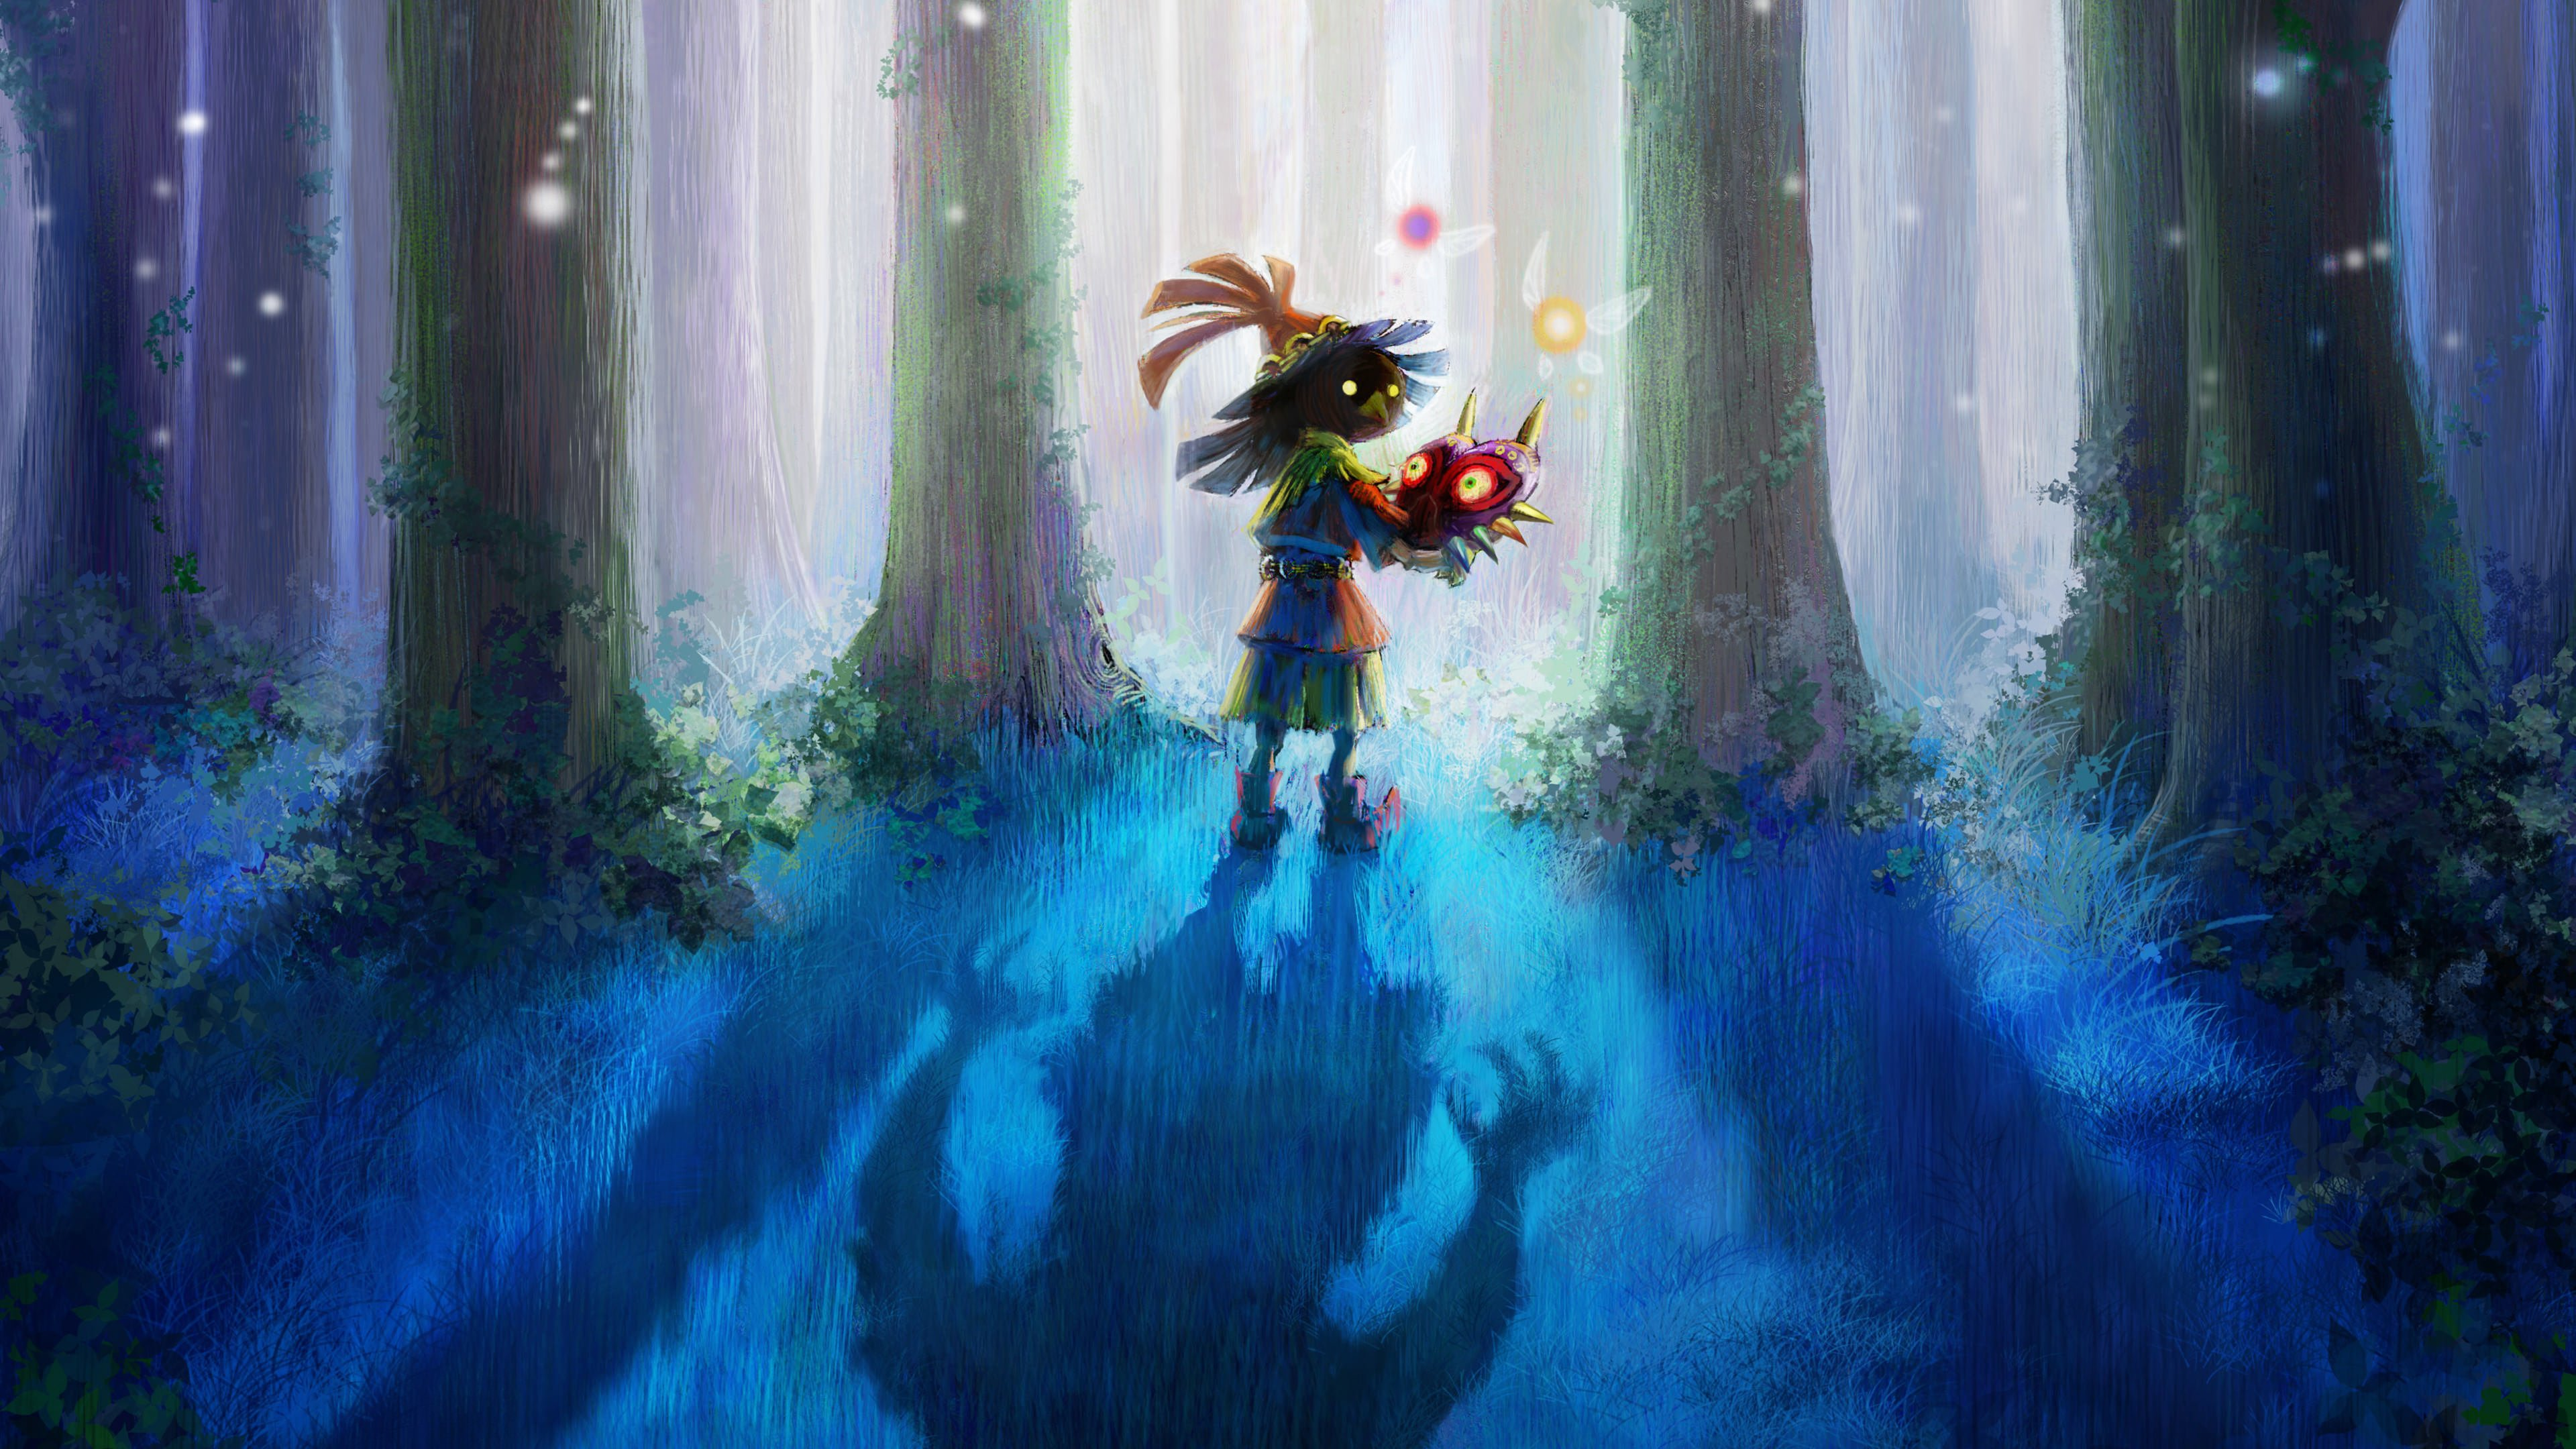 Skull Kid 4K Wallpaper